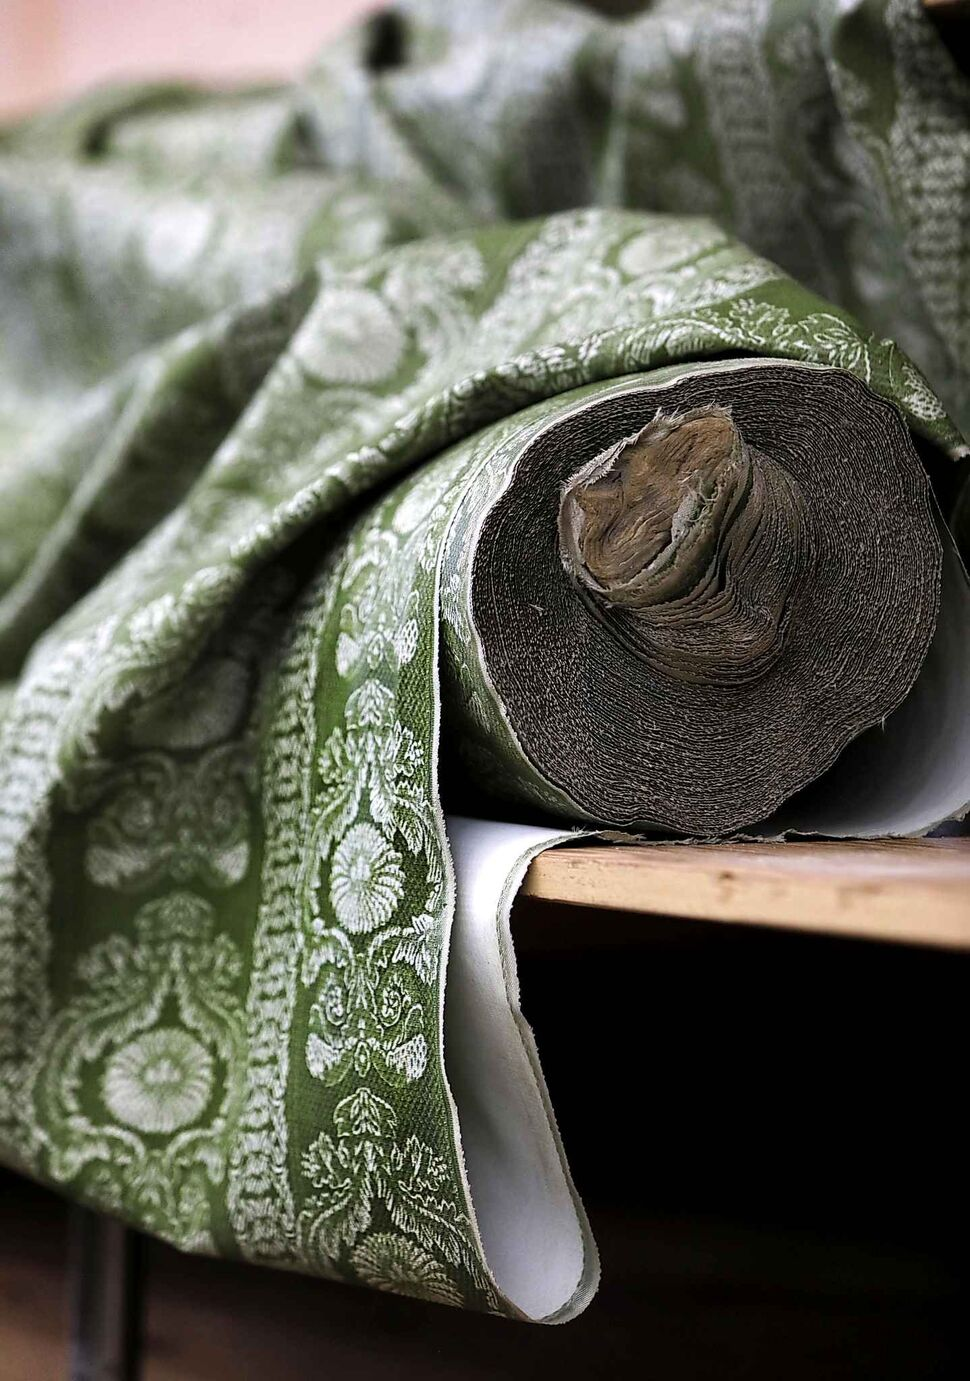 A bolt of olive green brocade fabric left behind on a shelf.   (Ruth Bonneville)